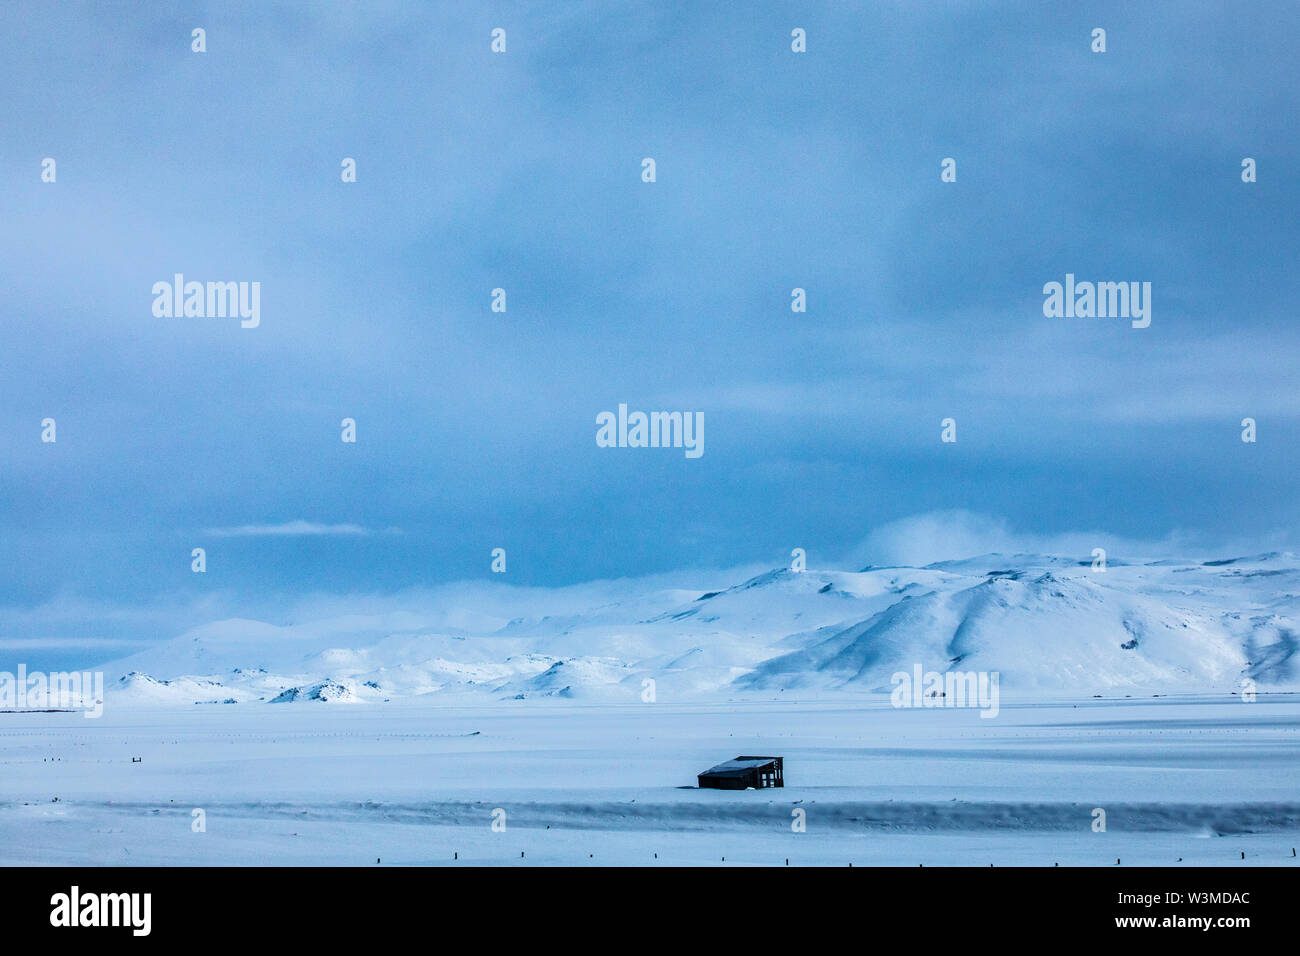 Field and mountain during winter in Fairfield, Idaho - Stock Image